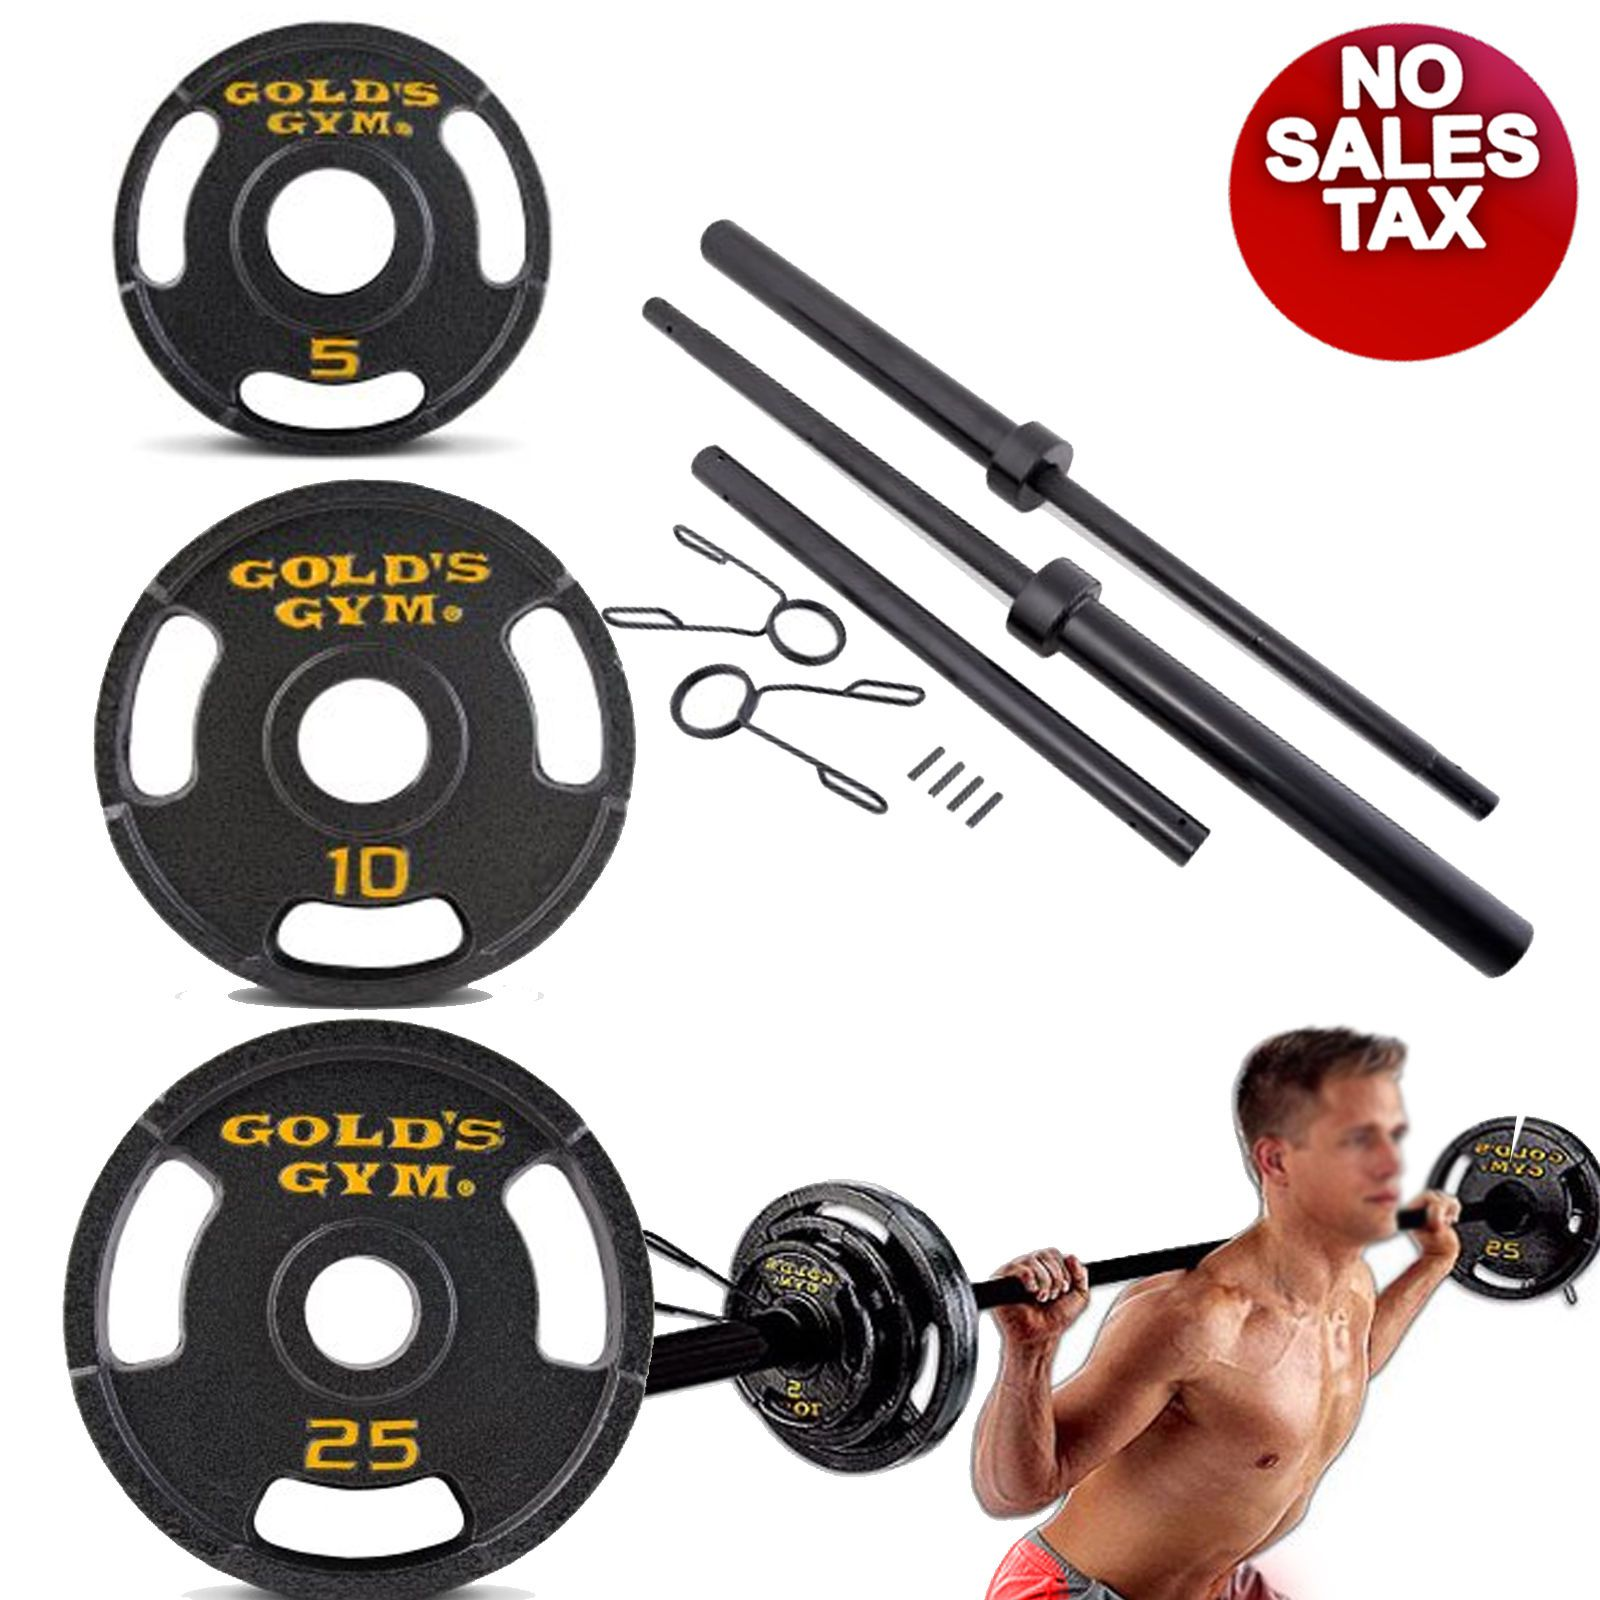 Golds Gym Olympic Weights 110 Lbs Bar Cast Iron Plates Gym Barbell Weight Set Work Out Wear Olympic Weight Set Barbell Weights Olympic Weights